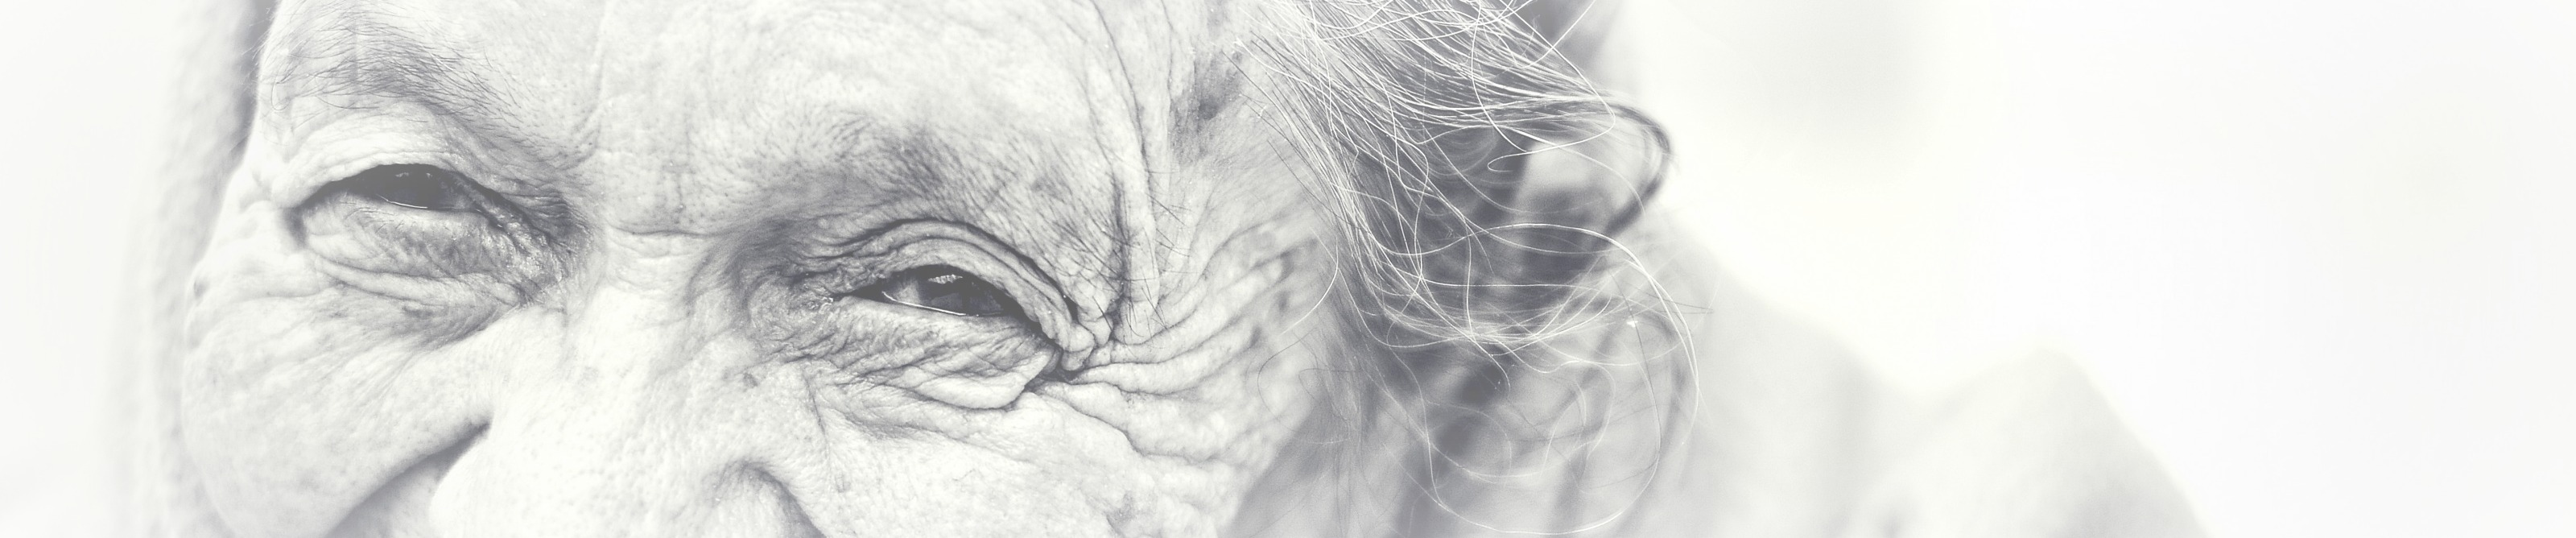 An extremely close up black and white picture of the eyes, forehead and top of noise of a really really old, wrinkly woman. She has a twinkle in her eye and a properly joyful face.